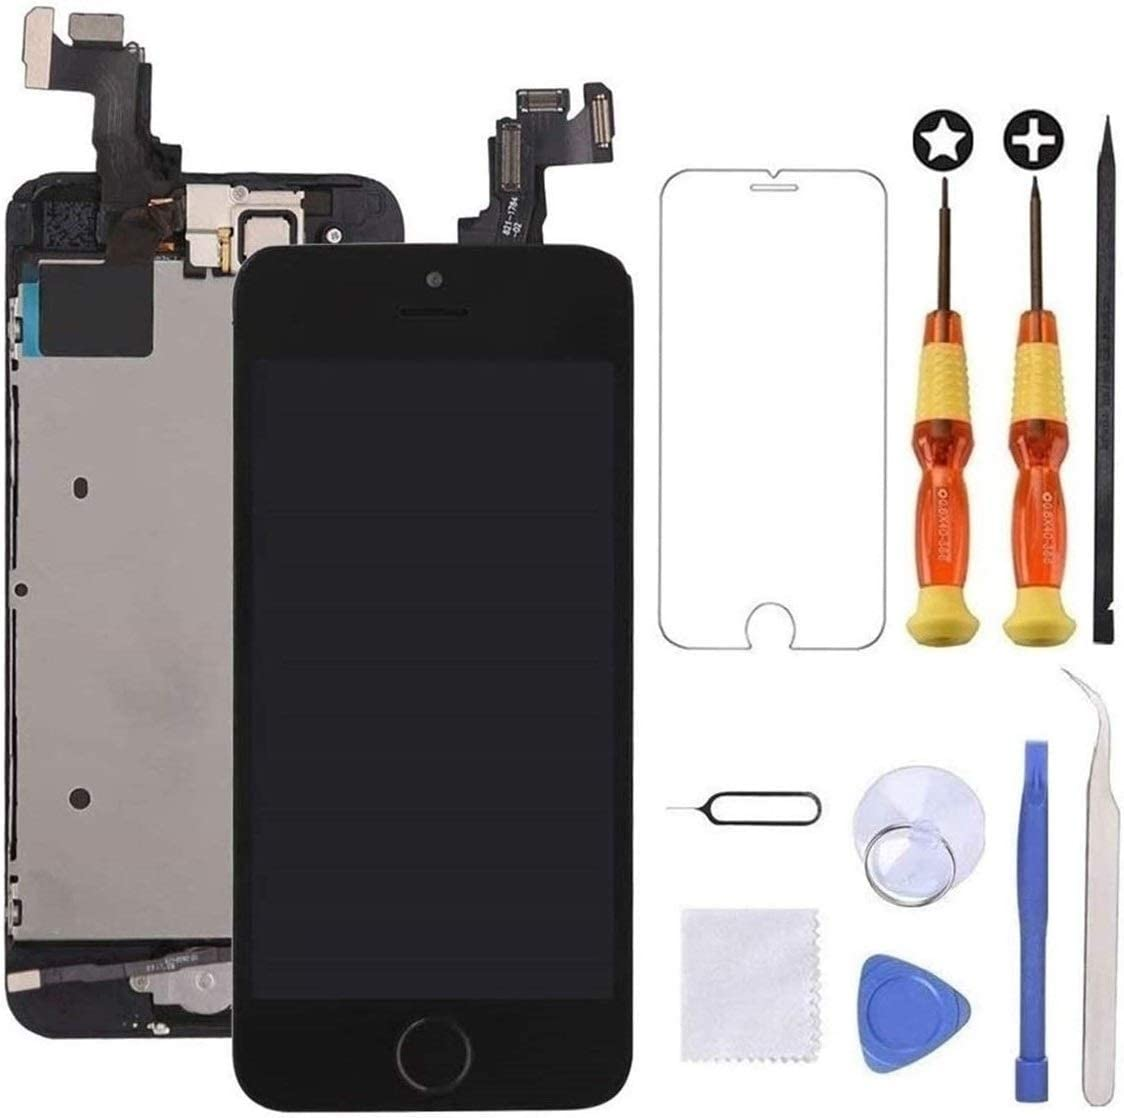 Brinonac for iPhone 5s/Se Screen Replacement Black Touch Display LCD Digitizer Full Assembly with Front Camera,Proximity Sensor,Ear Speaker and Home Button Including Repair Tool and Screen Protector